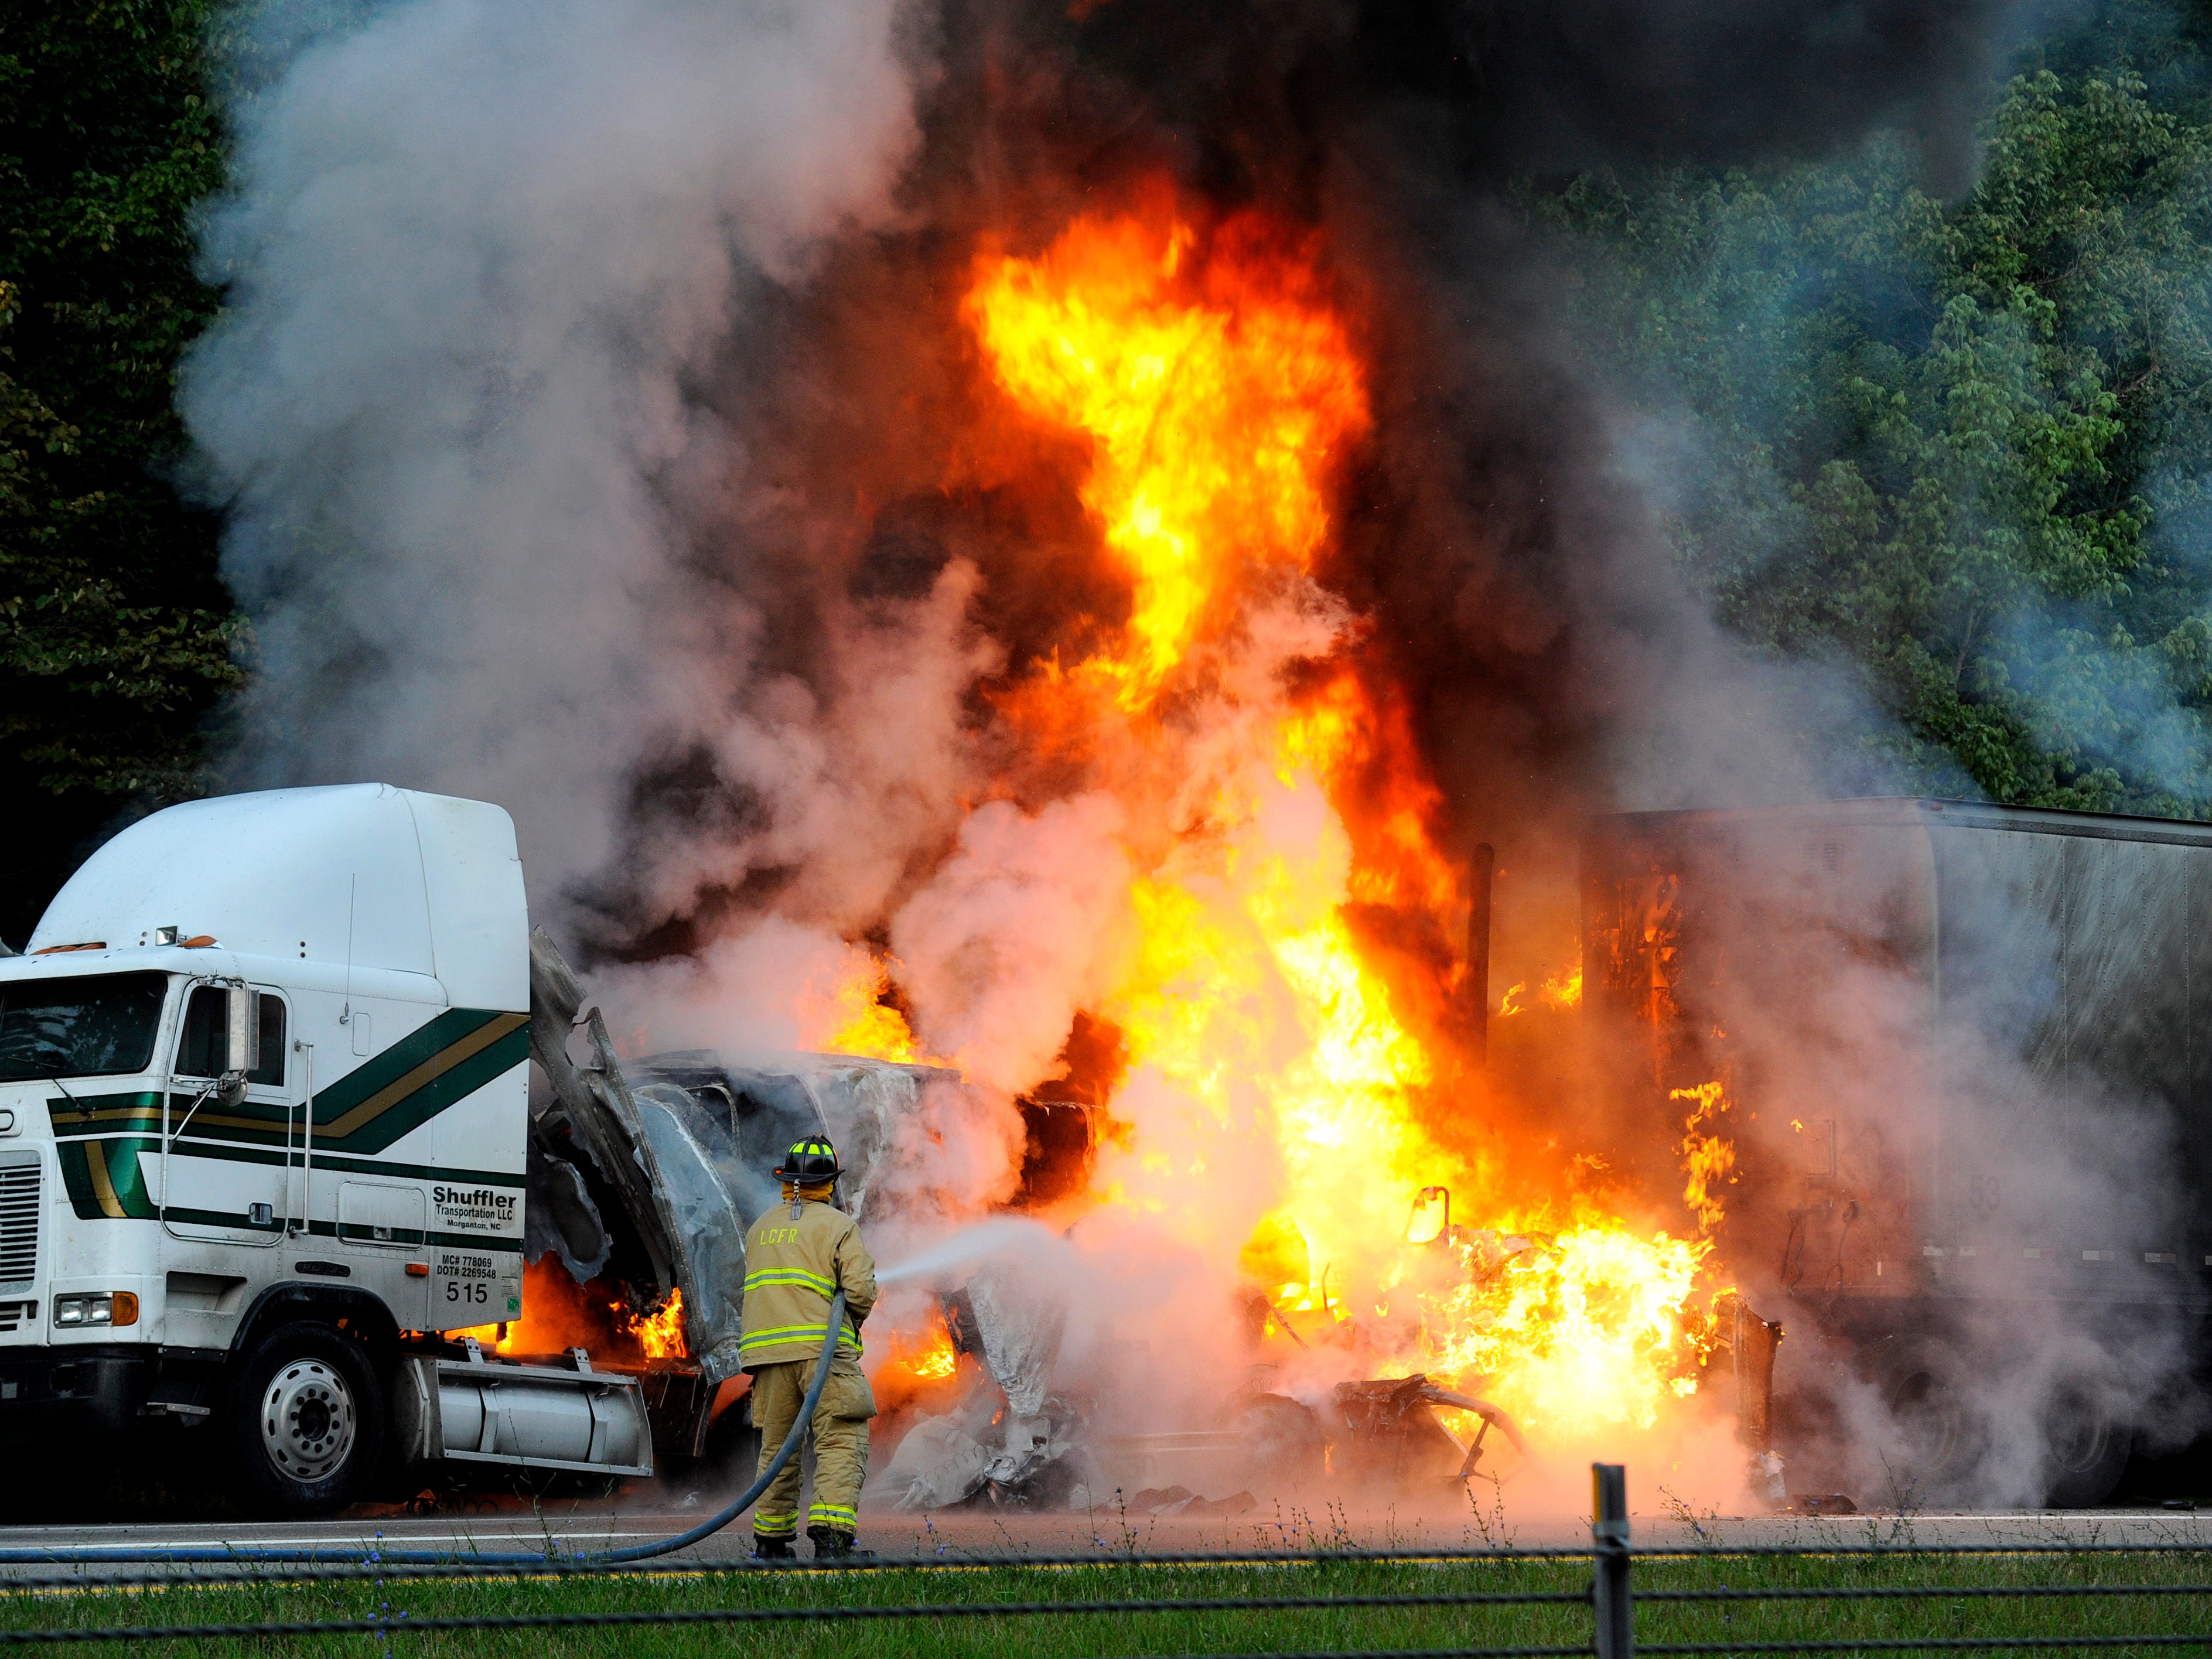 Fiery crash on I-40 eastbound just east of the US321 Lenoir City exit halted traffic Tuesday, July 29, 2014. Two tractor-trailers in this photo and third vehicle (located about 500 yards west) collided and all three caught fire. Authorities are still investigating at the scene.